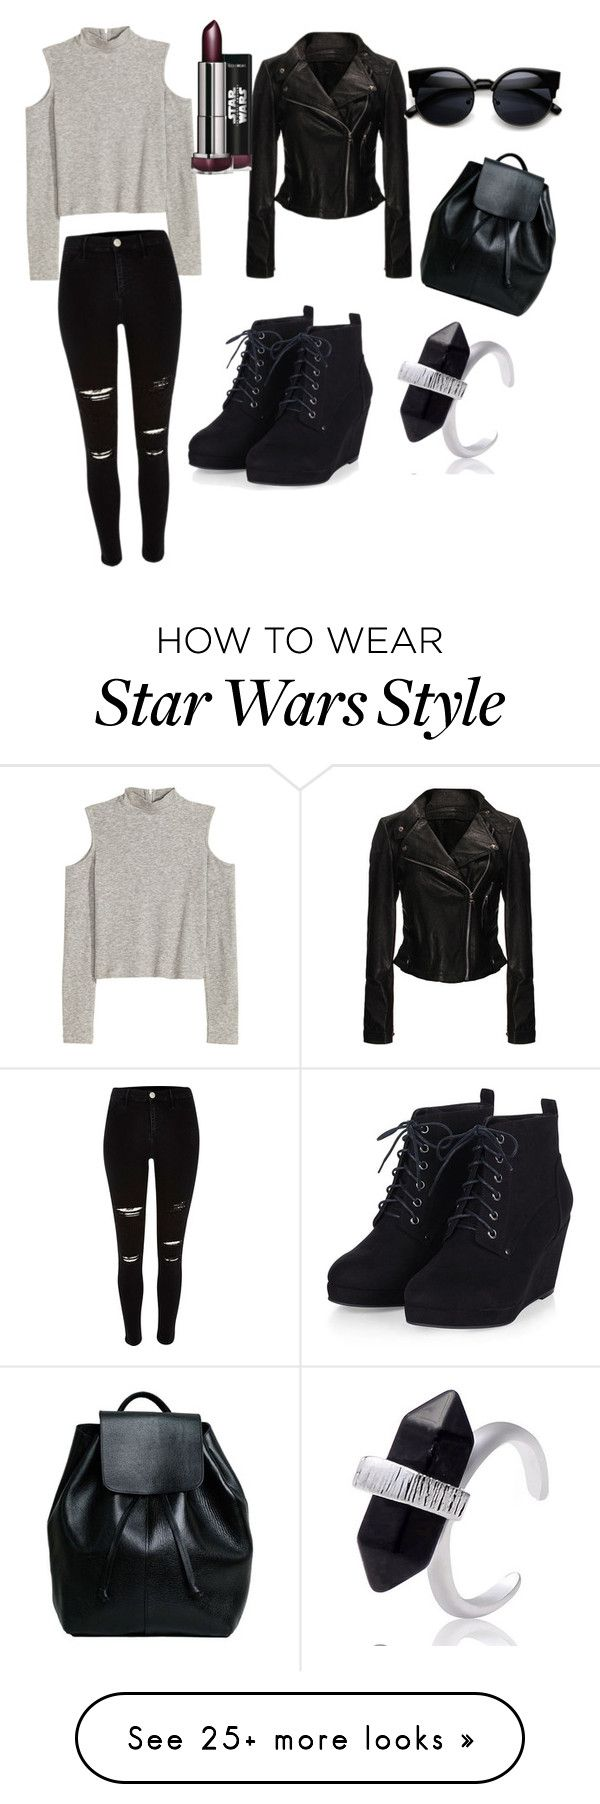 """""""Chic."""" by uchral on Polyvore featuring River Island, women's clothing, women's fashion, women, female, woman, misses and juniors"""